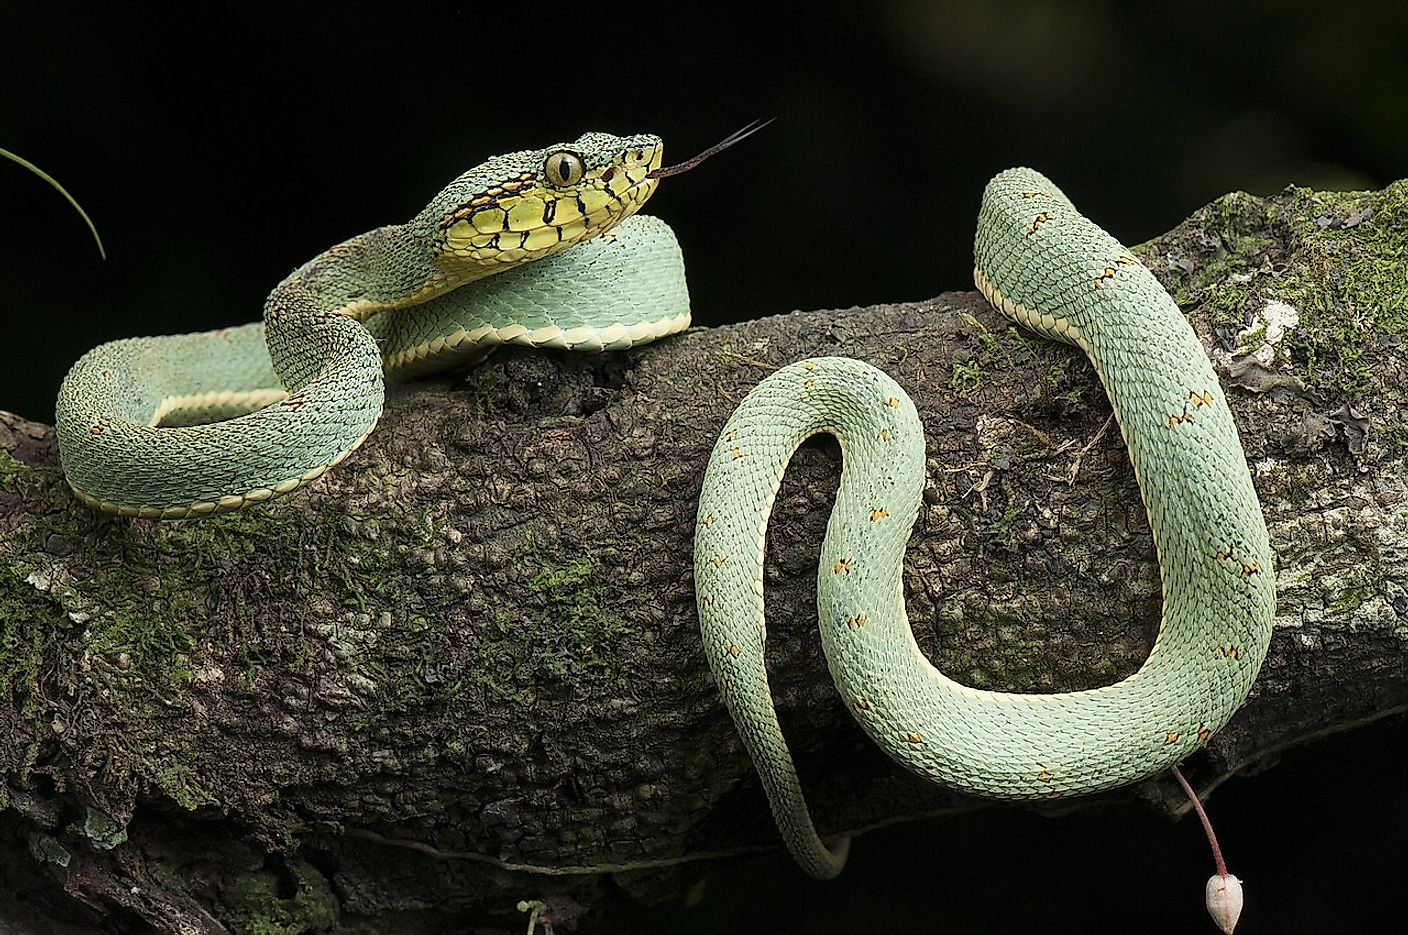 Bothrops bilineatus is a highly venomous pitviper species found in the Amazon. Image credit: Renato Augusto Martins/Wikimedia.org